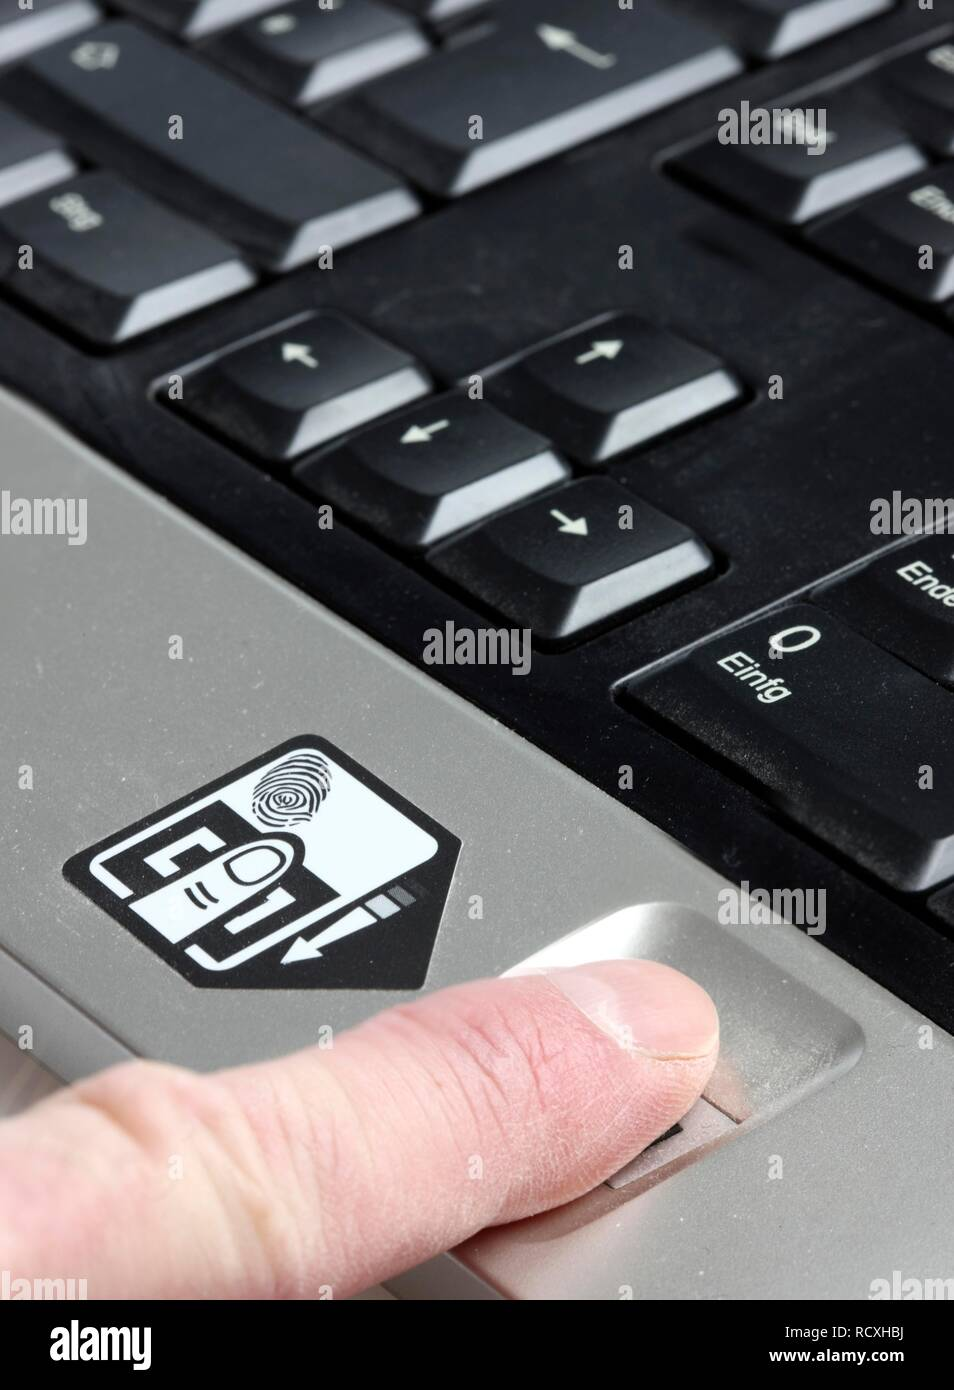 Computer keyboard with a fingerprint reader, only registered users can operate the computer after their fingerprint identifies - Stock Image